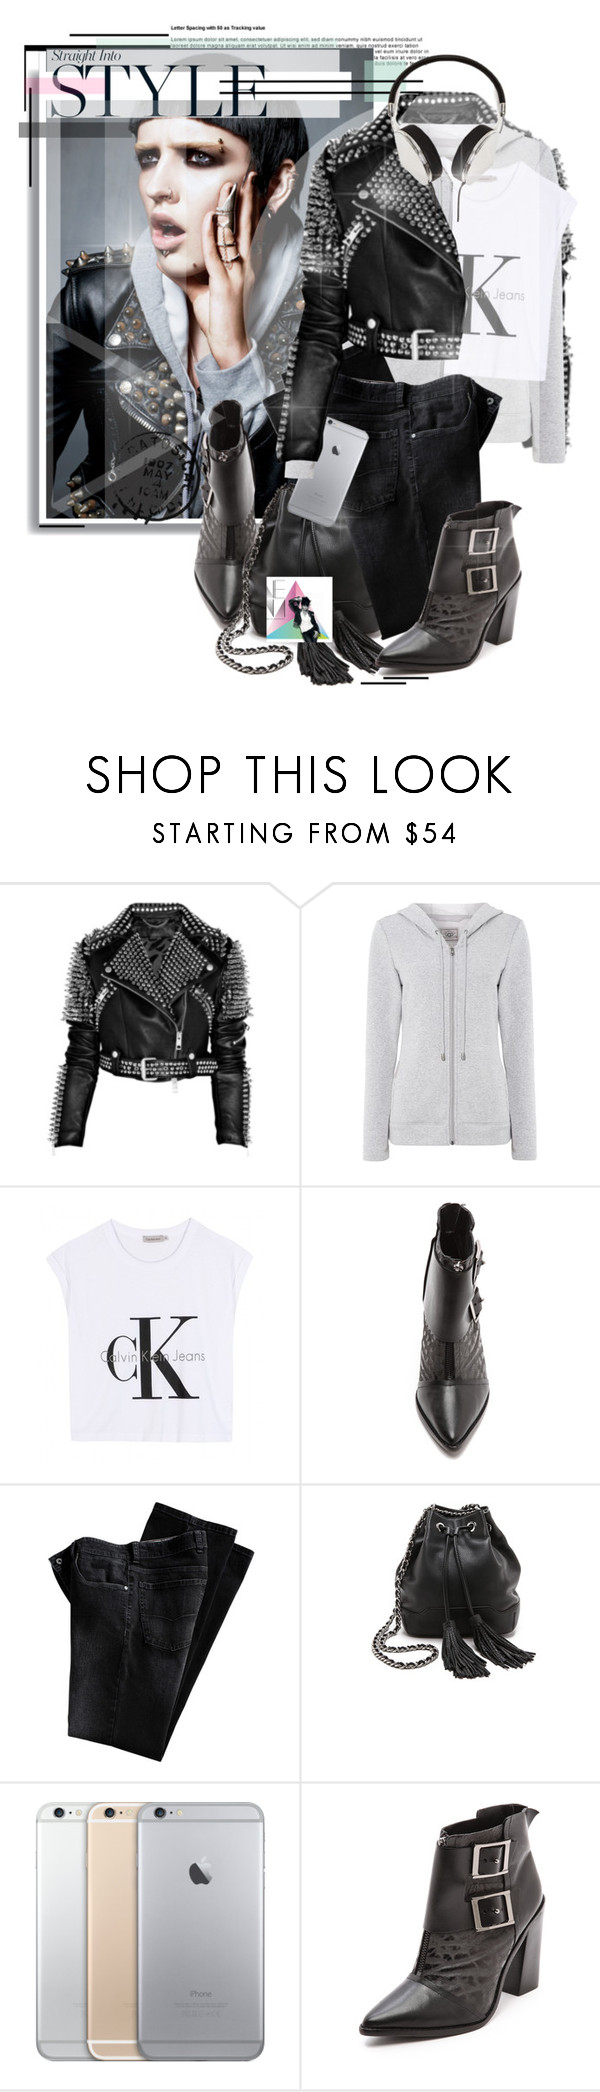 """The Rocking Moods!!"" by sg-art ❤ liked on Polyvore featuring UGG Australia, Calvin Klein Jeans, TIBI and Frends"